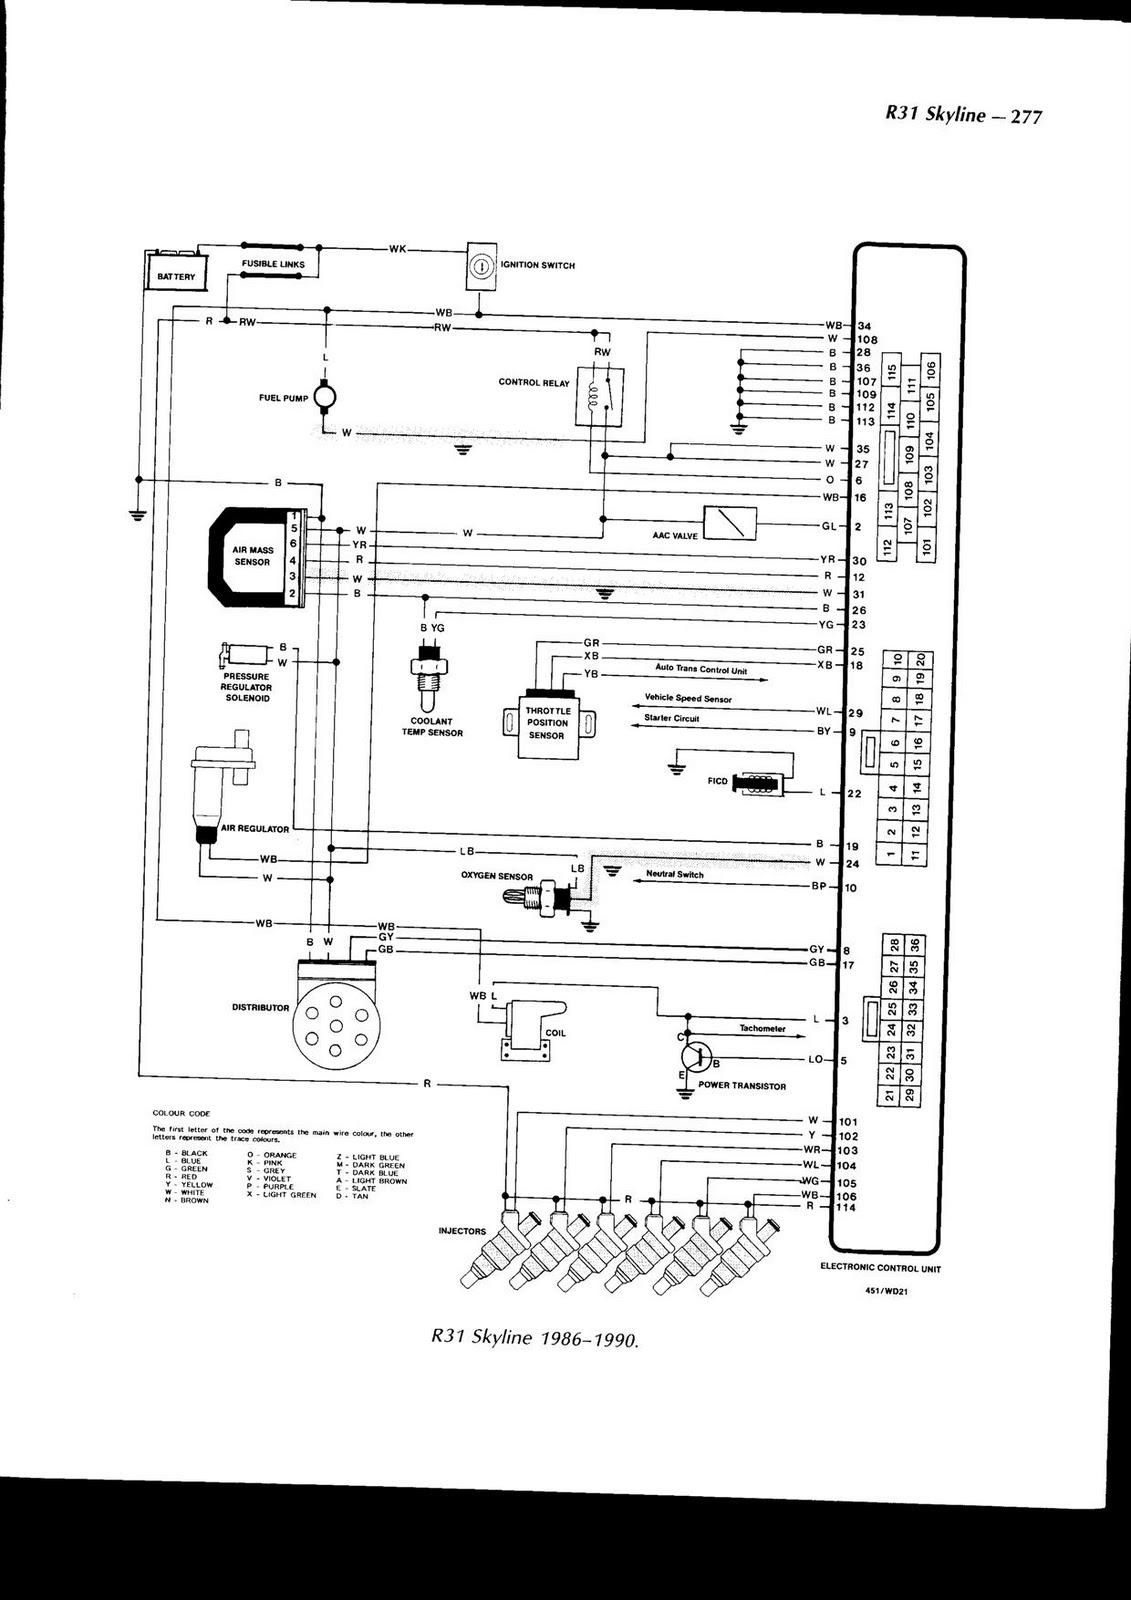 RB30_R31_Wiring_Diagram rb30 wiring diagrams 280zx project vl commodore ecu wiring diagram at reclaimingppi.co